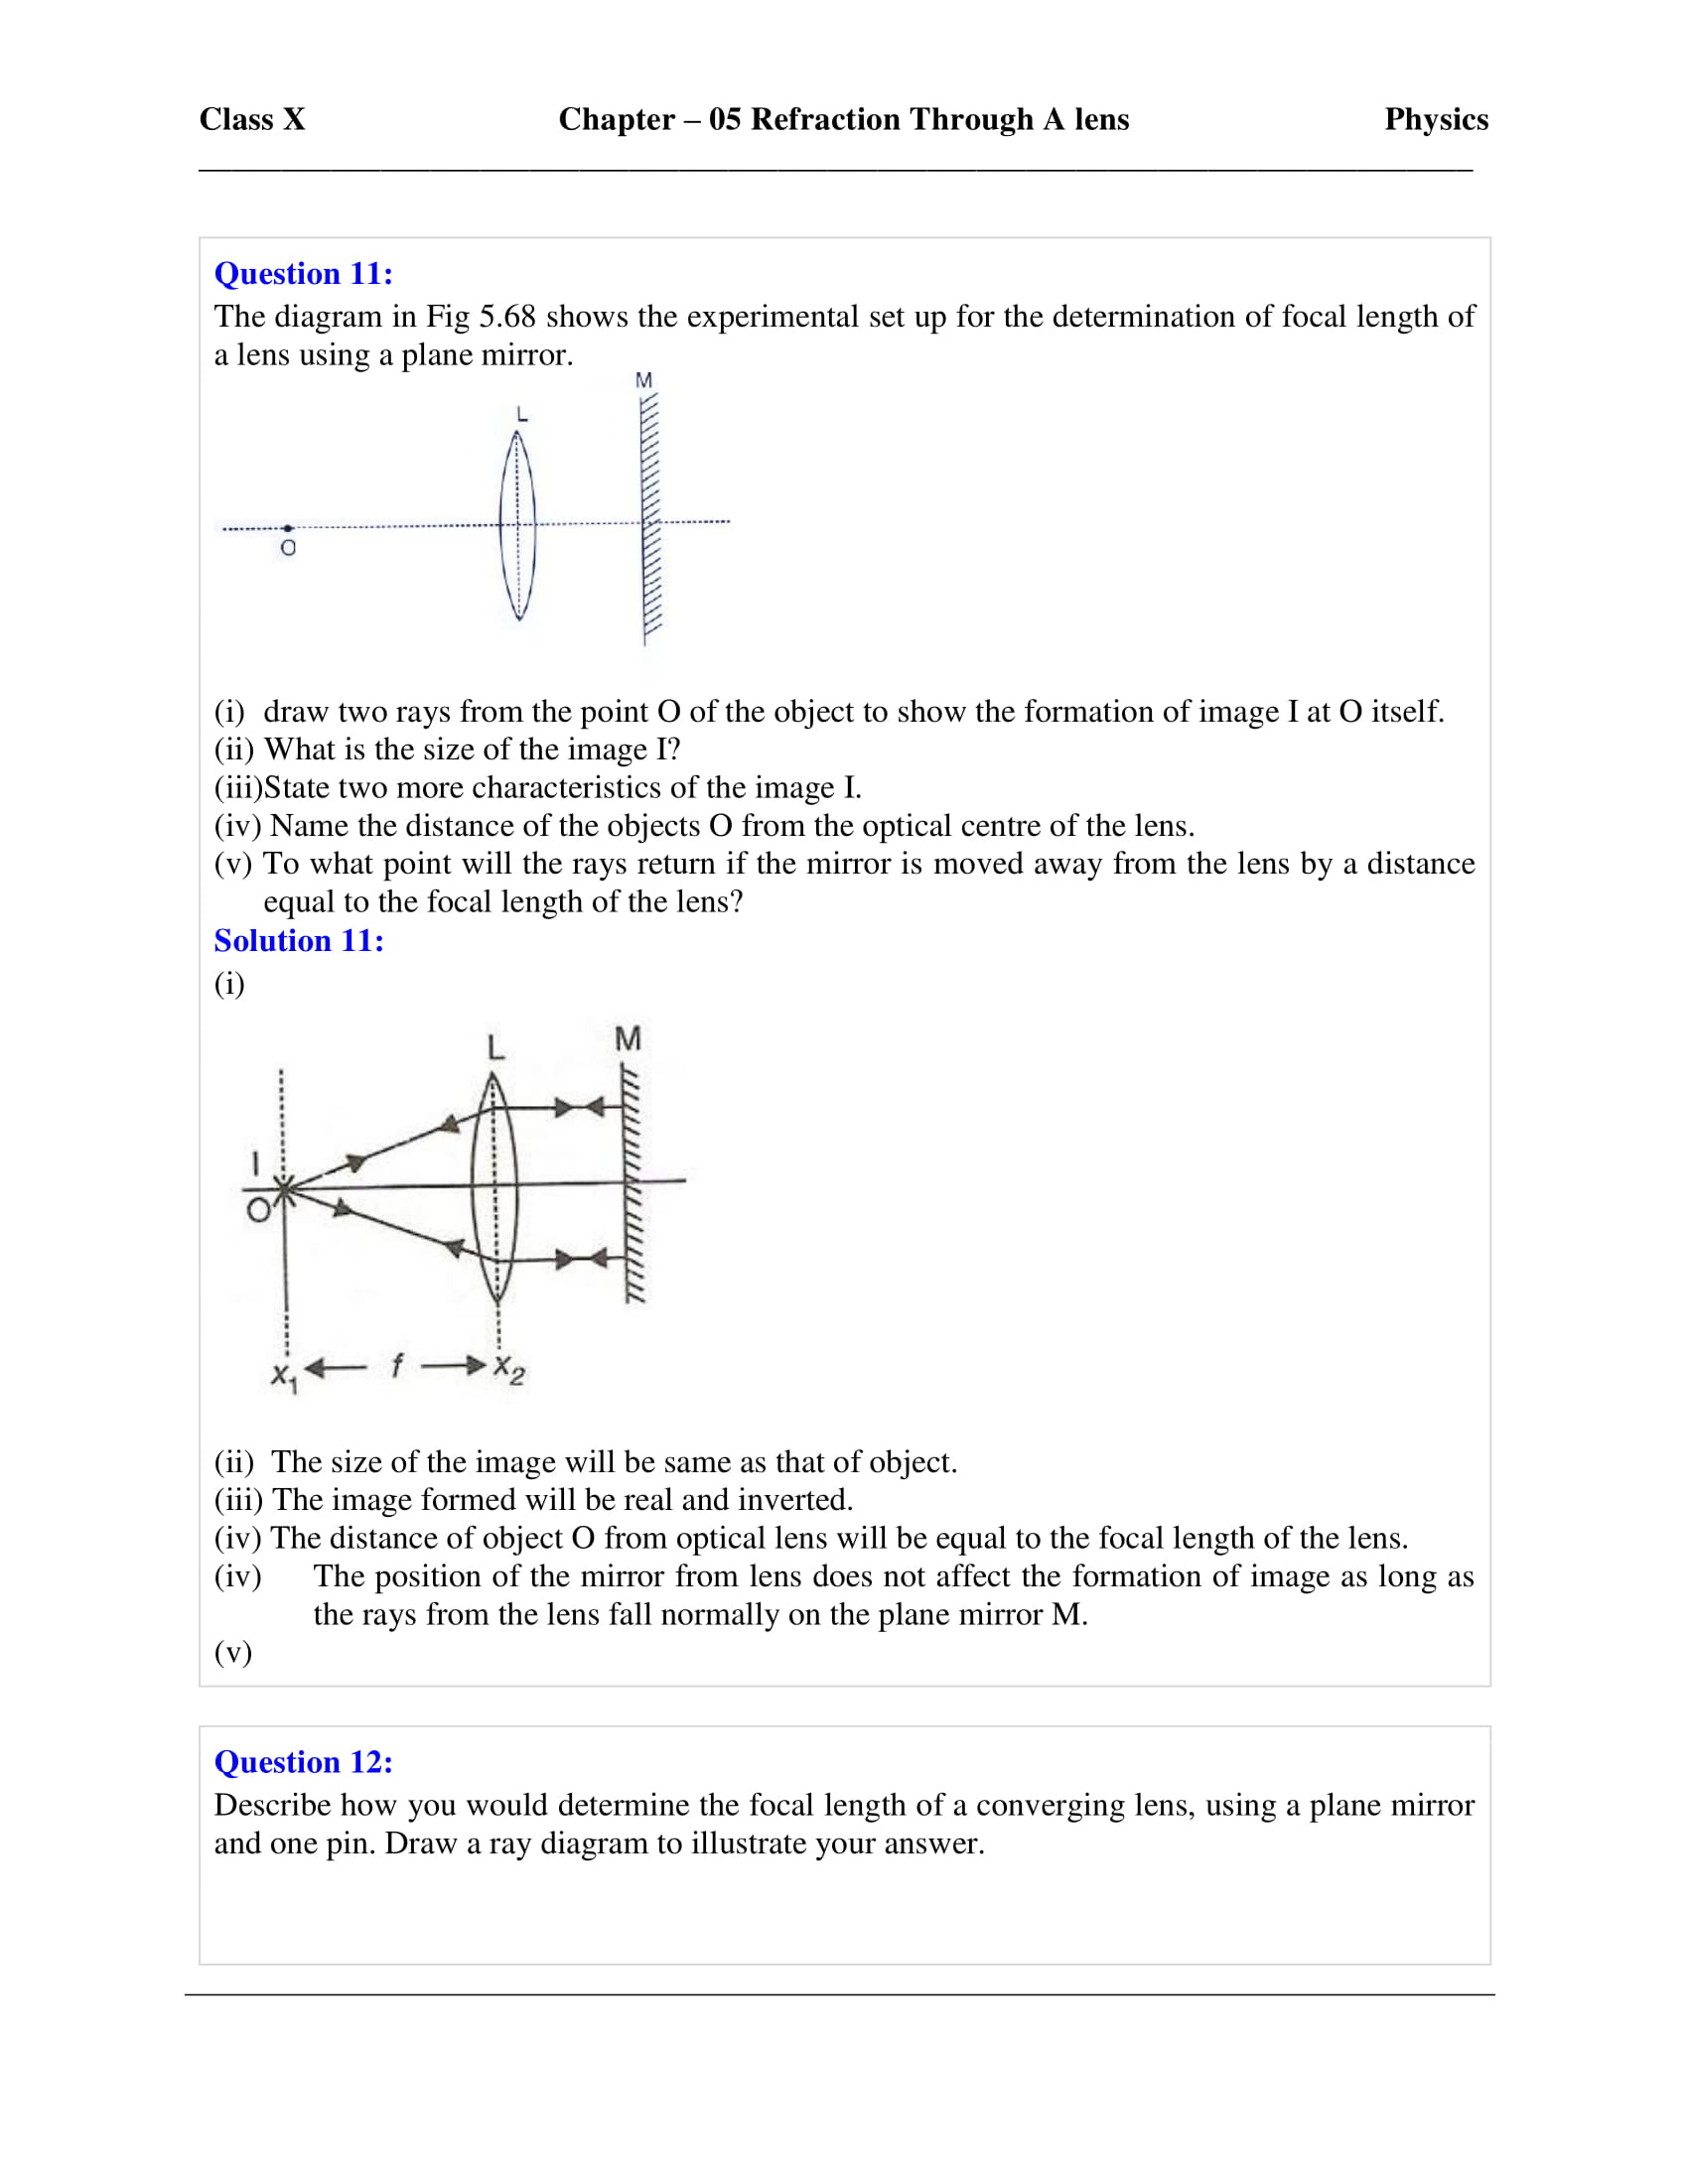 icse-selina-physics-solutions-class-10-chapter-5-refraction-through-a-lens-35